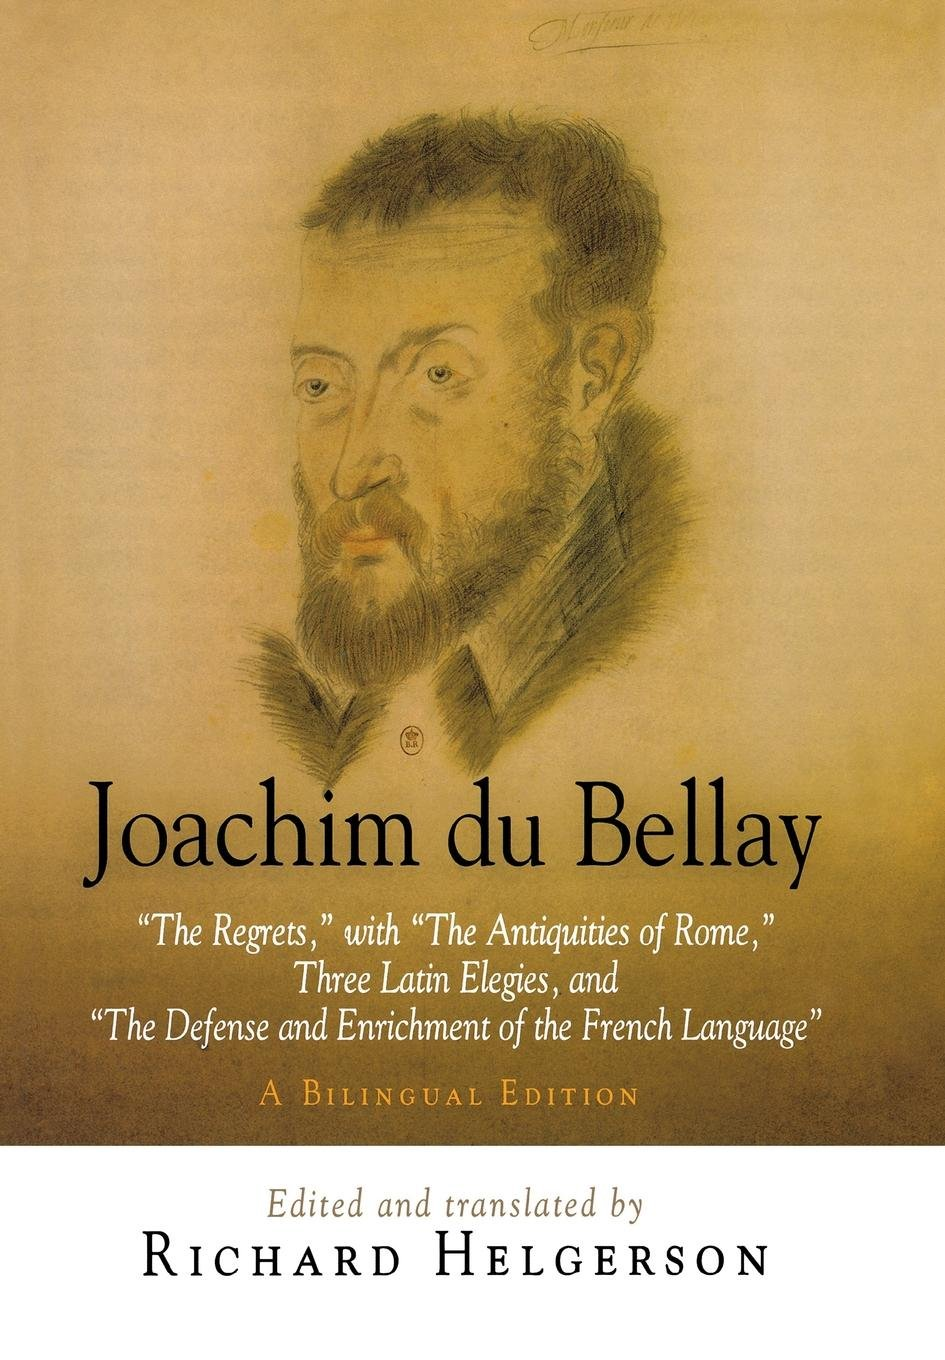 Joachim du Bellay: ''The Regrets,'' with ''The Antiquities of Rome,'' Three Latin Elegies, and ''The Defense and Enrichment of the French Language.'' A Bilingual Edition